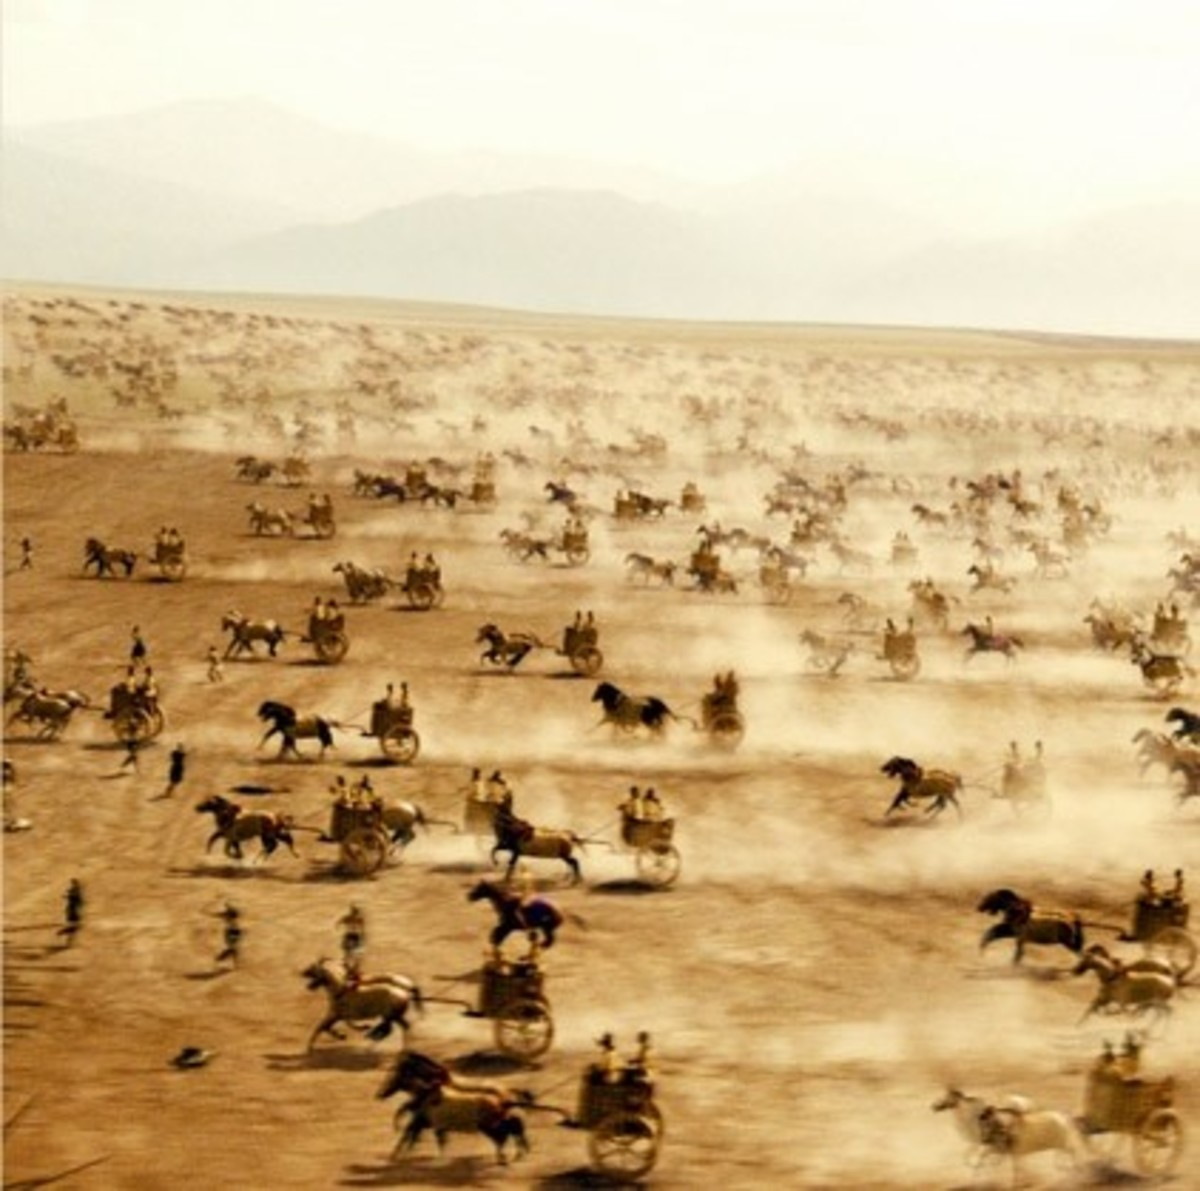 Charging chariots of the Persian army